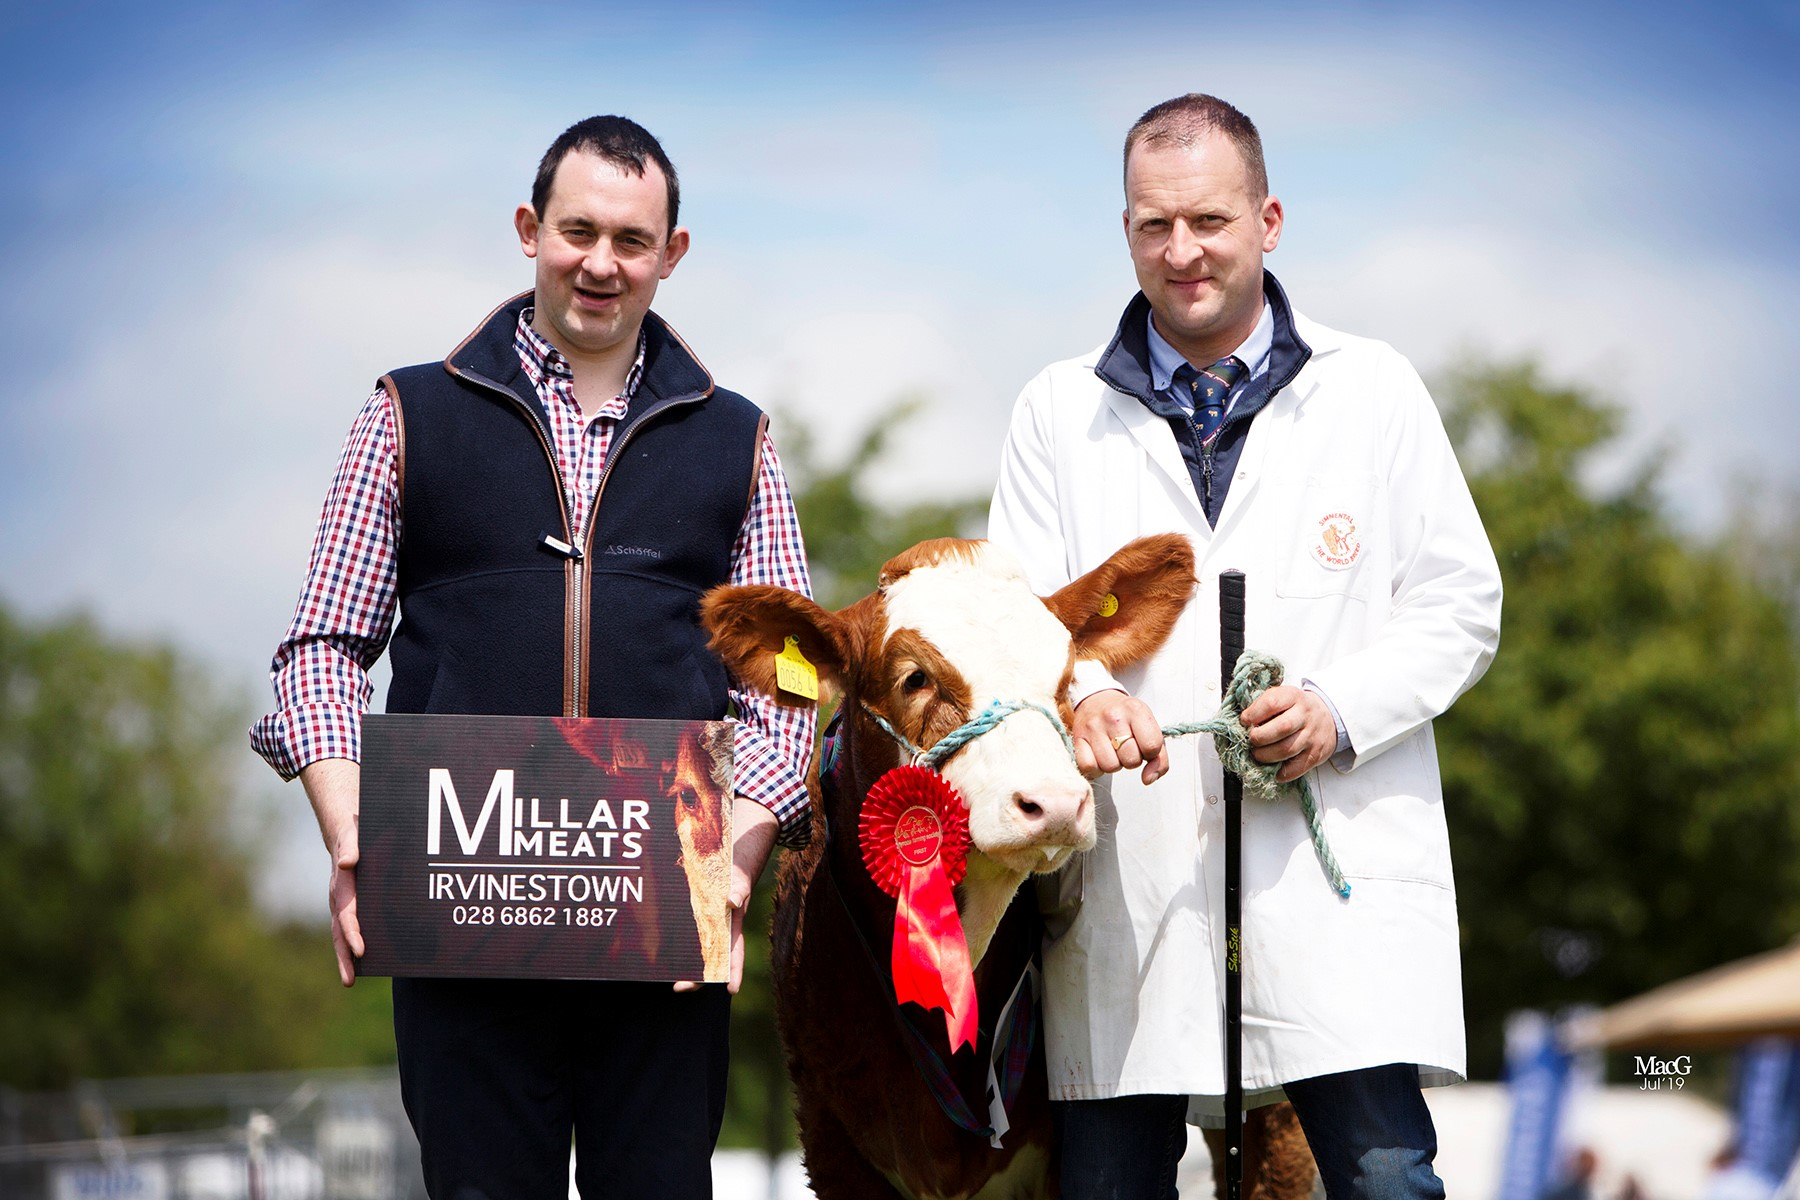 Ranfurly Weikel 30th exhibited by Jonny Hazelton, Dungannon, was the winner of the heifer calf class. Making the presentation is sponsor Stephen Millar, Millar Meats.